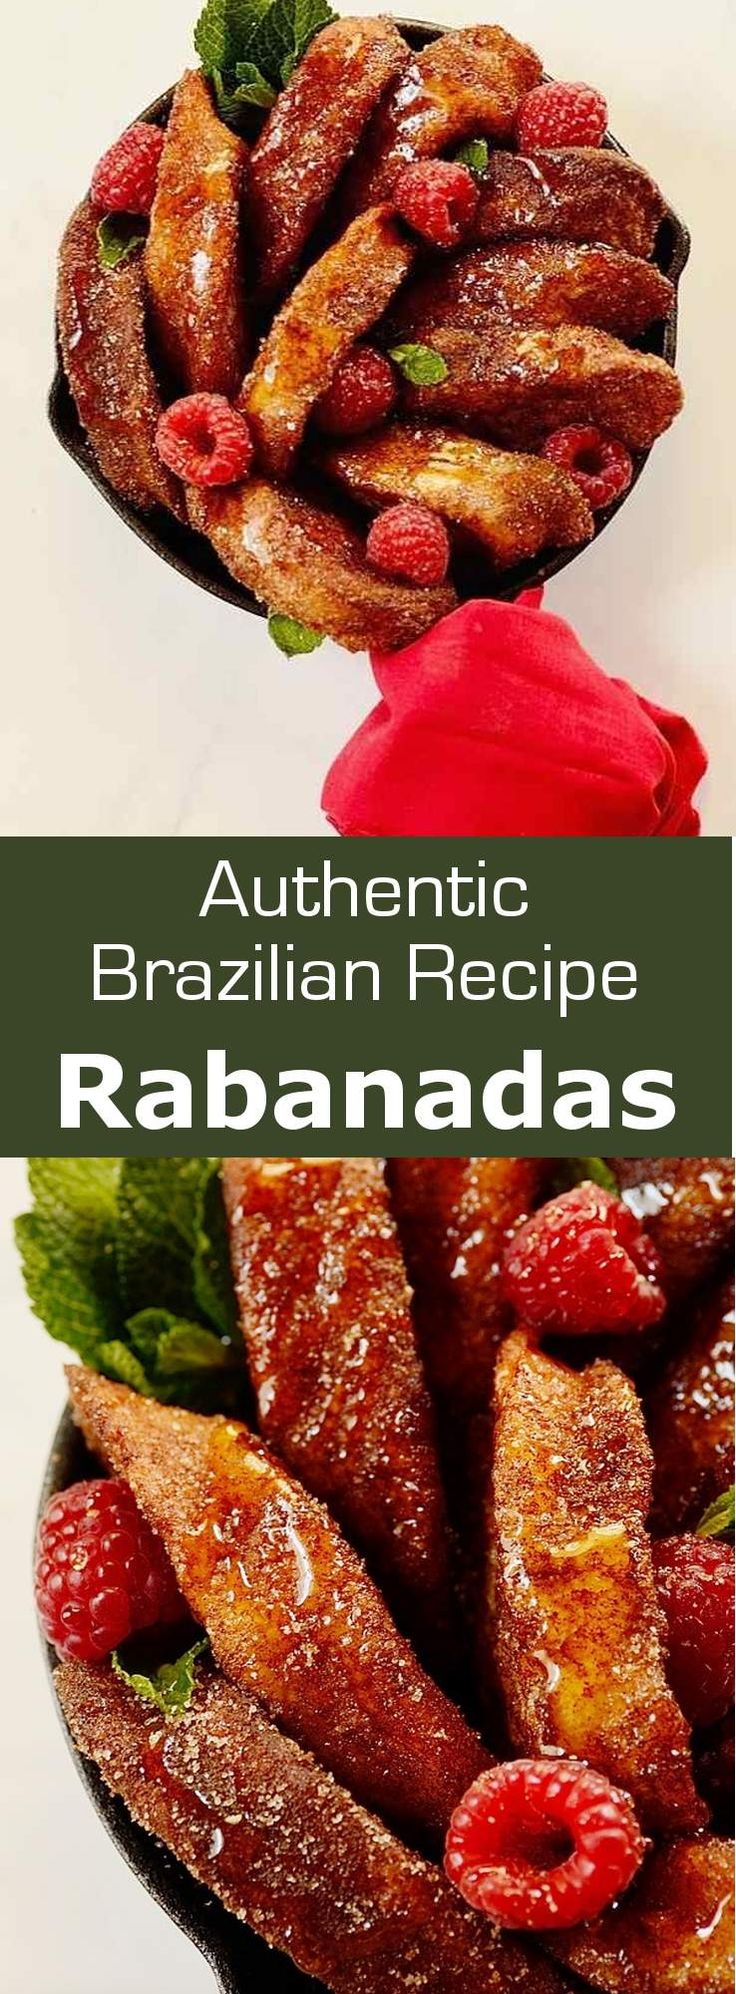 Brazilian French Toast (rabanada) is a dessert or afternoon snack soaked in flavored milk, coated in beaten eggs, fried, and sprinkled with sugar-cinnamon. #christmas #dessert #Brazil #196flavors